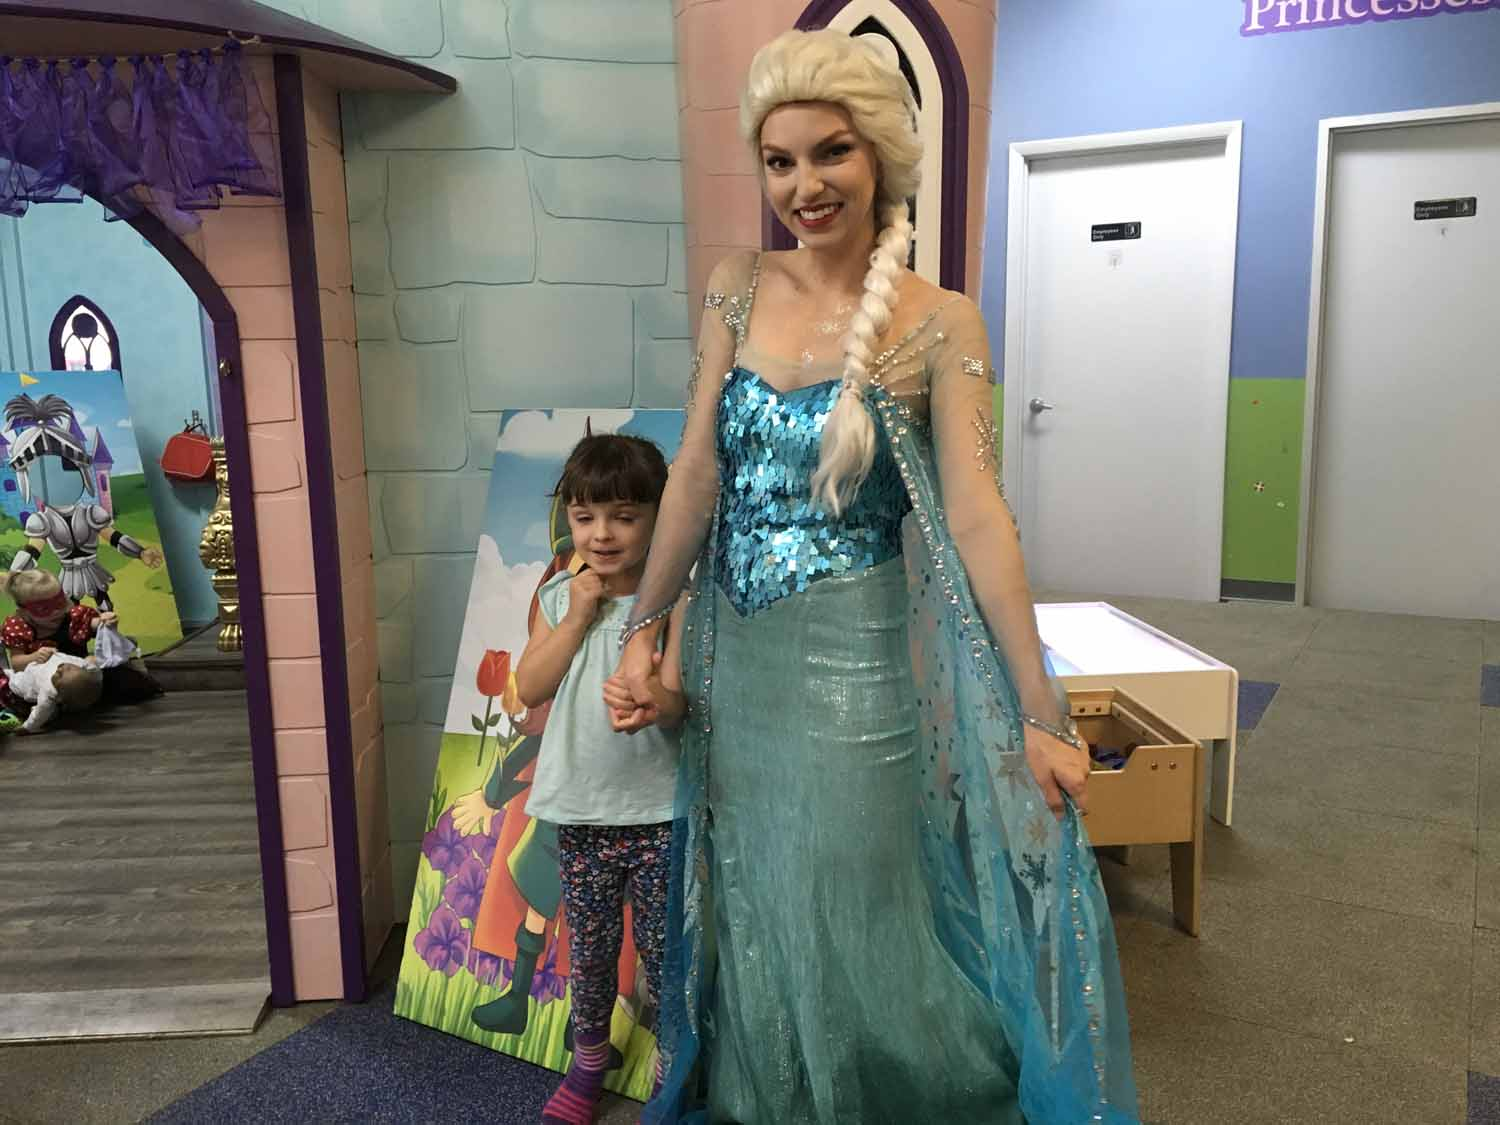 frozen themed birthday party in orlando florida - princesses and princes (14).jpg